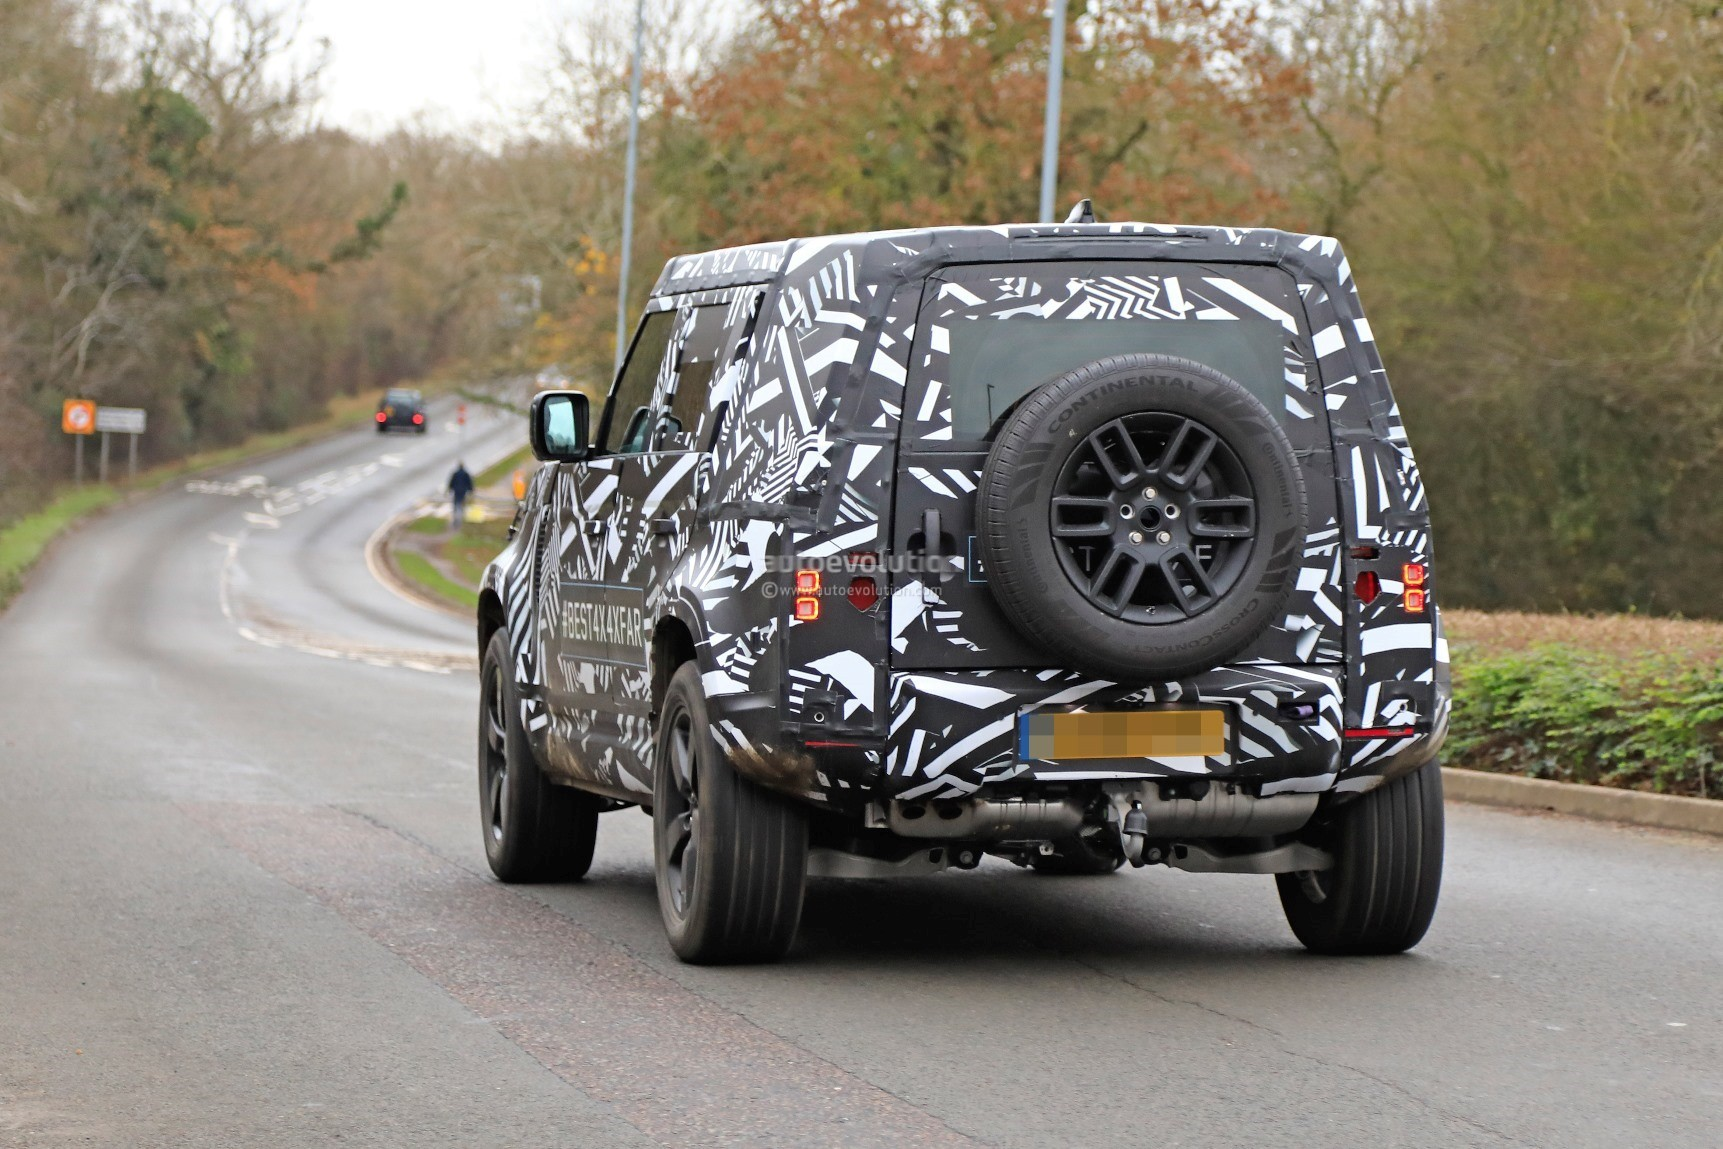 2018 Land Rover Range Rover Evoque >> 2020 Land Rover Defender Spied, Transitions To Unibody Construction - autoevolution